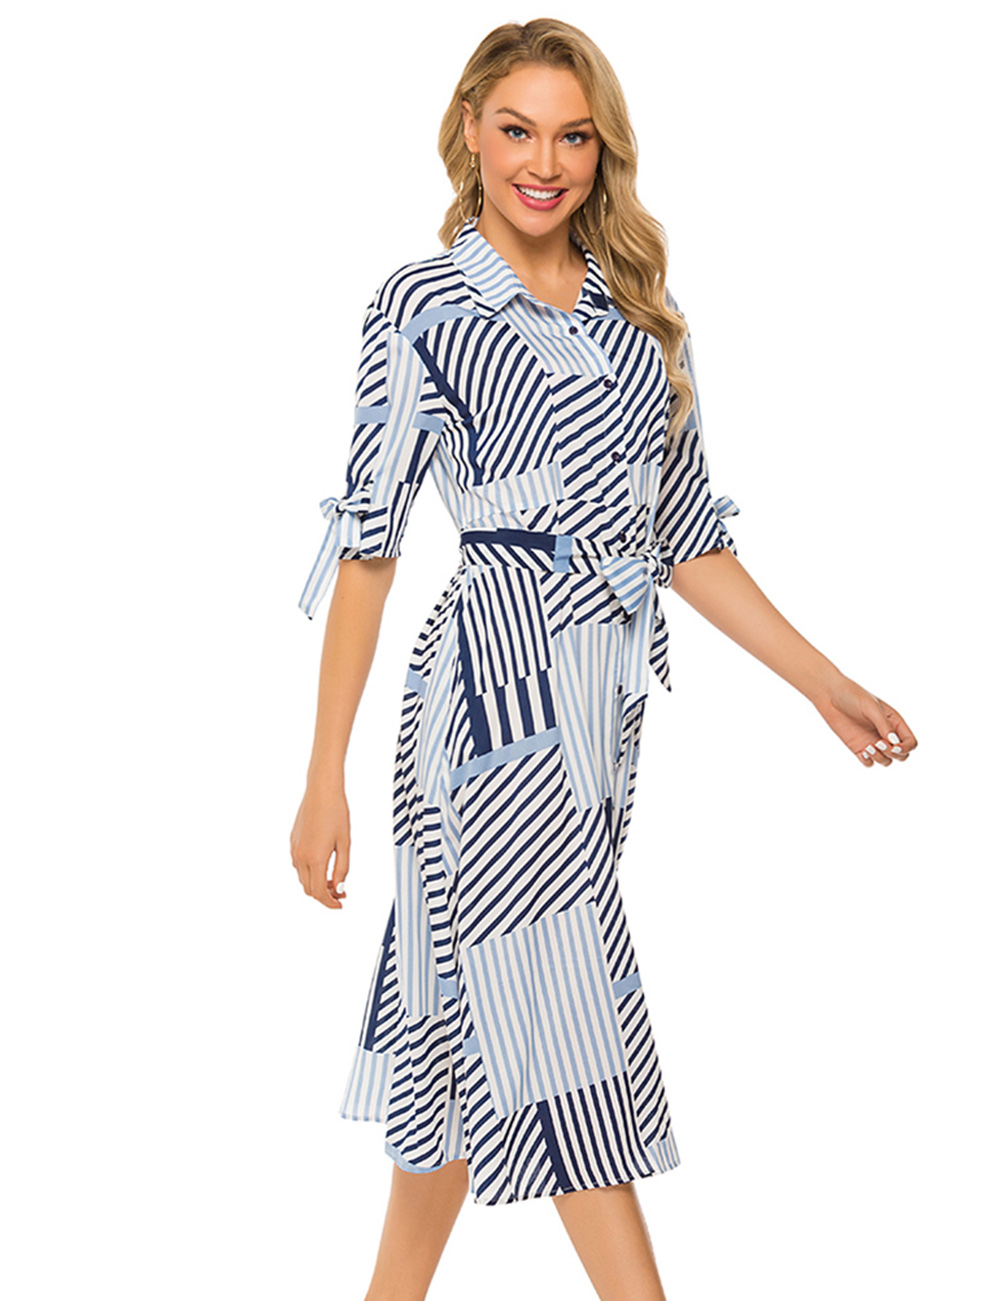 //cdn.affectcloud.com/feelingirldress/upload/imgs/2019-06-27/VZ190875-BU3/VZ190875-BU3-7.jpg